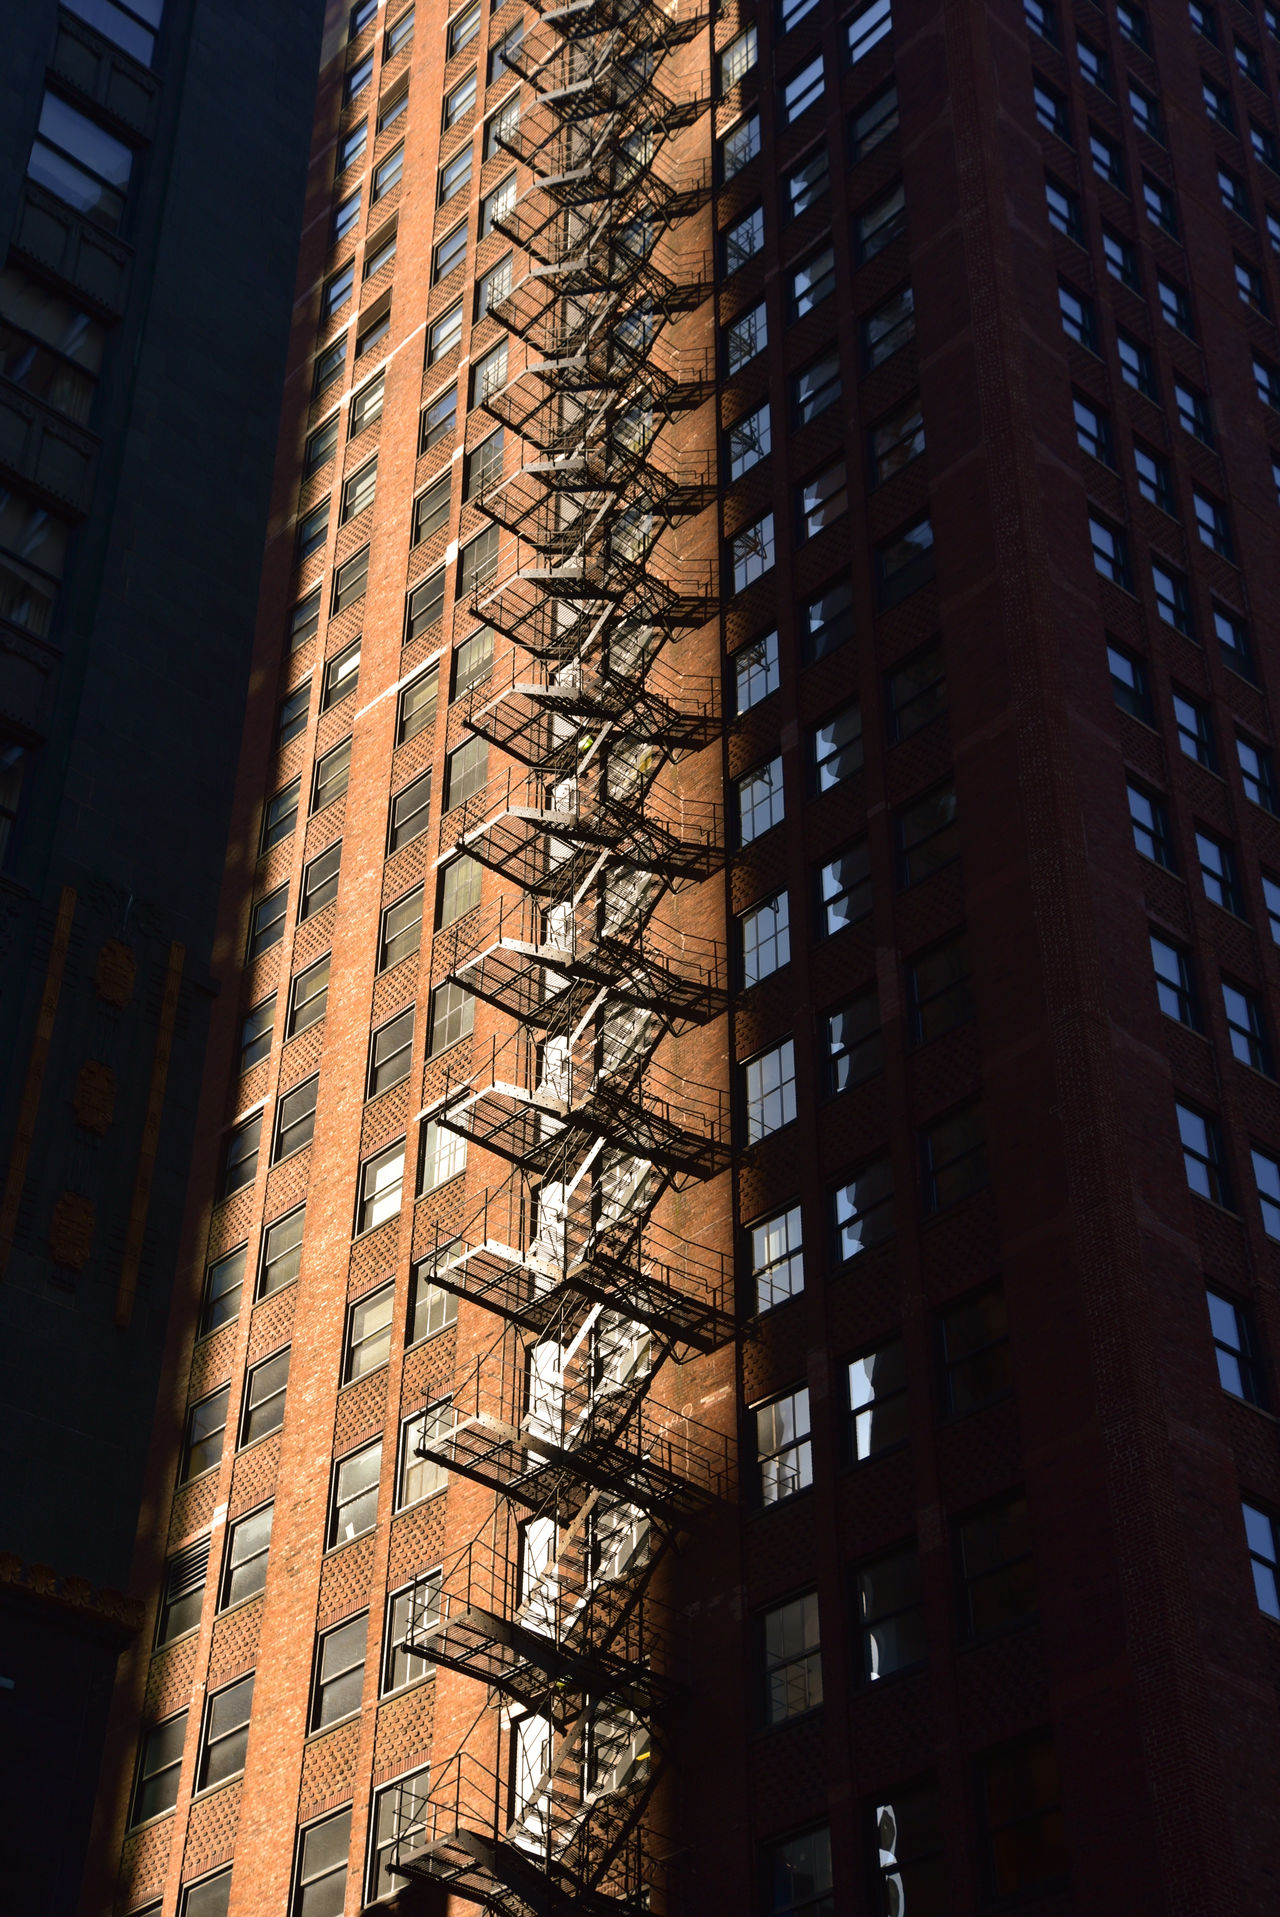 Architecture Big City brick building exterior City early morning Feuertreppe Fire Escape Low angle view skyscraper sunshine The City Light